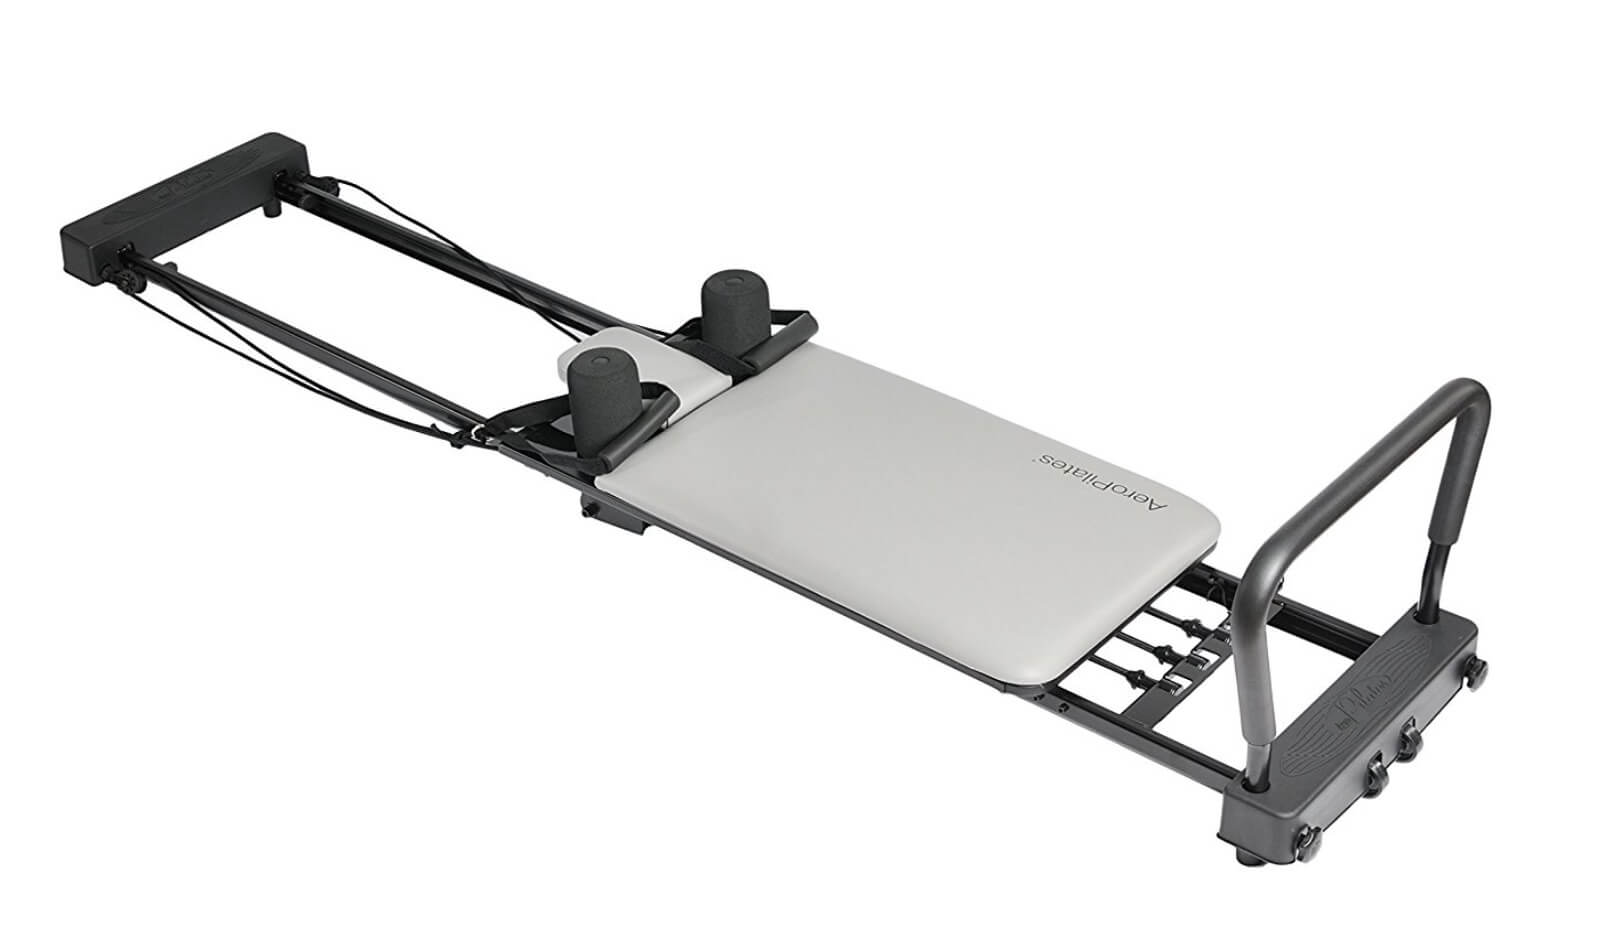 Stamina AeroPilates Reformer 287 review